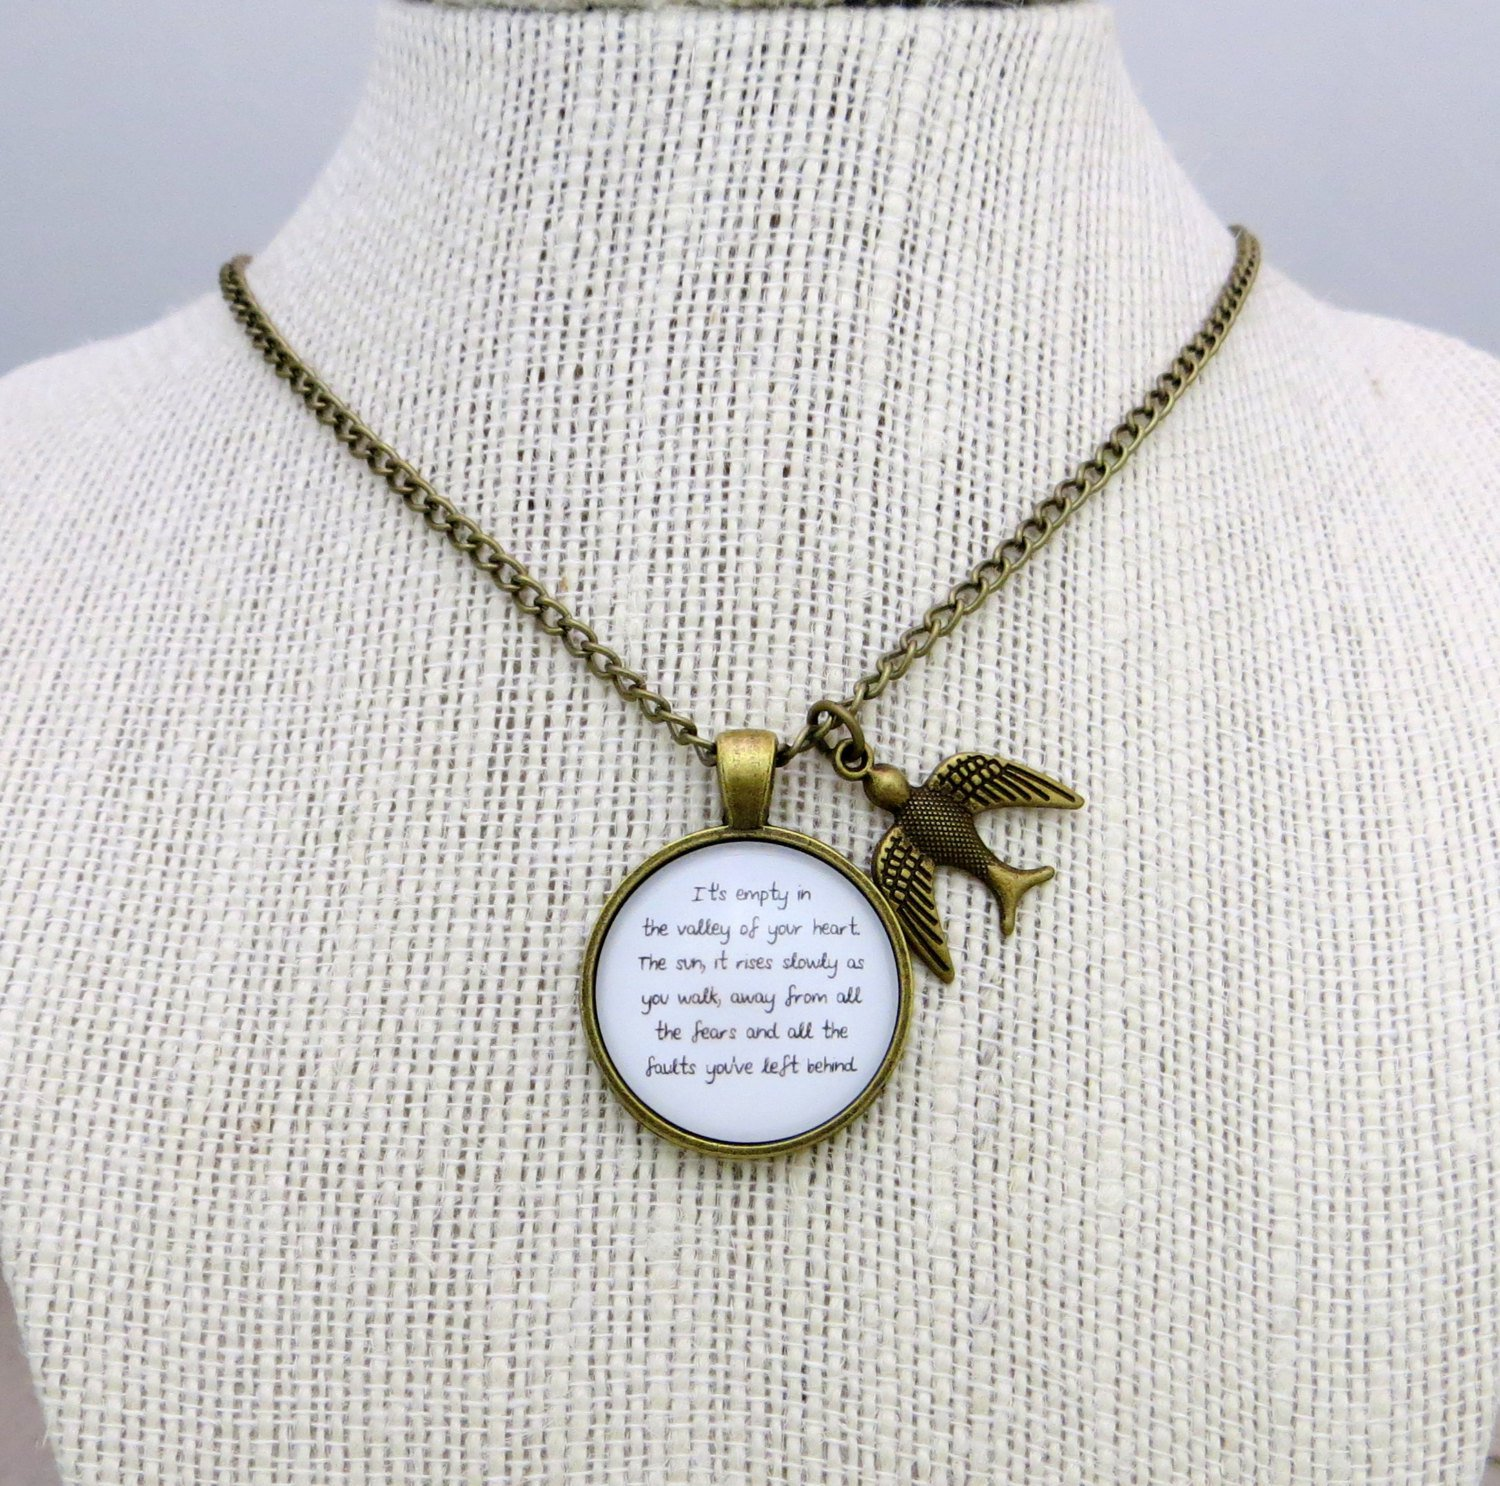 Mumford and Sons Inspired Lyrical Quote Necklace The Cave (Brass, 18 inches)